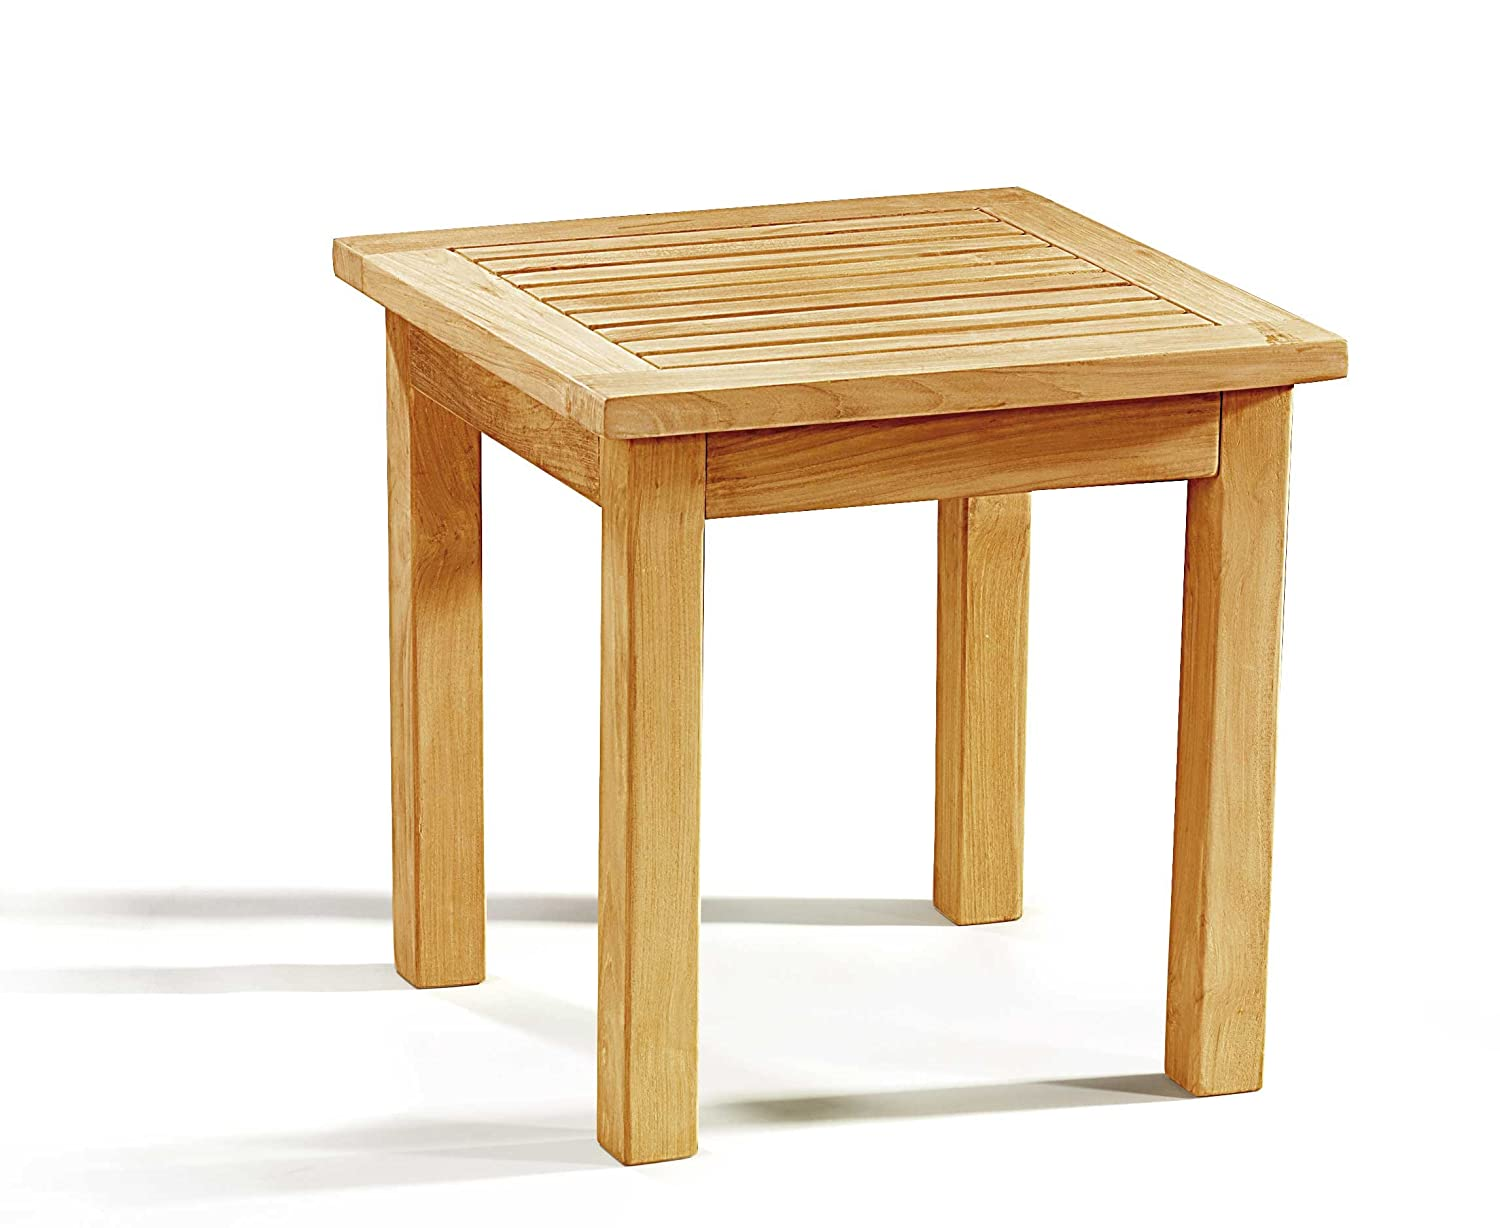 Jati Teak Wood Occasional Square Garden Side Table Brand, Quality & Value